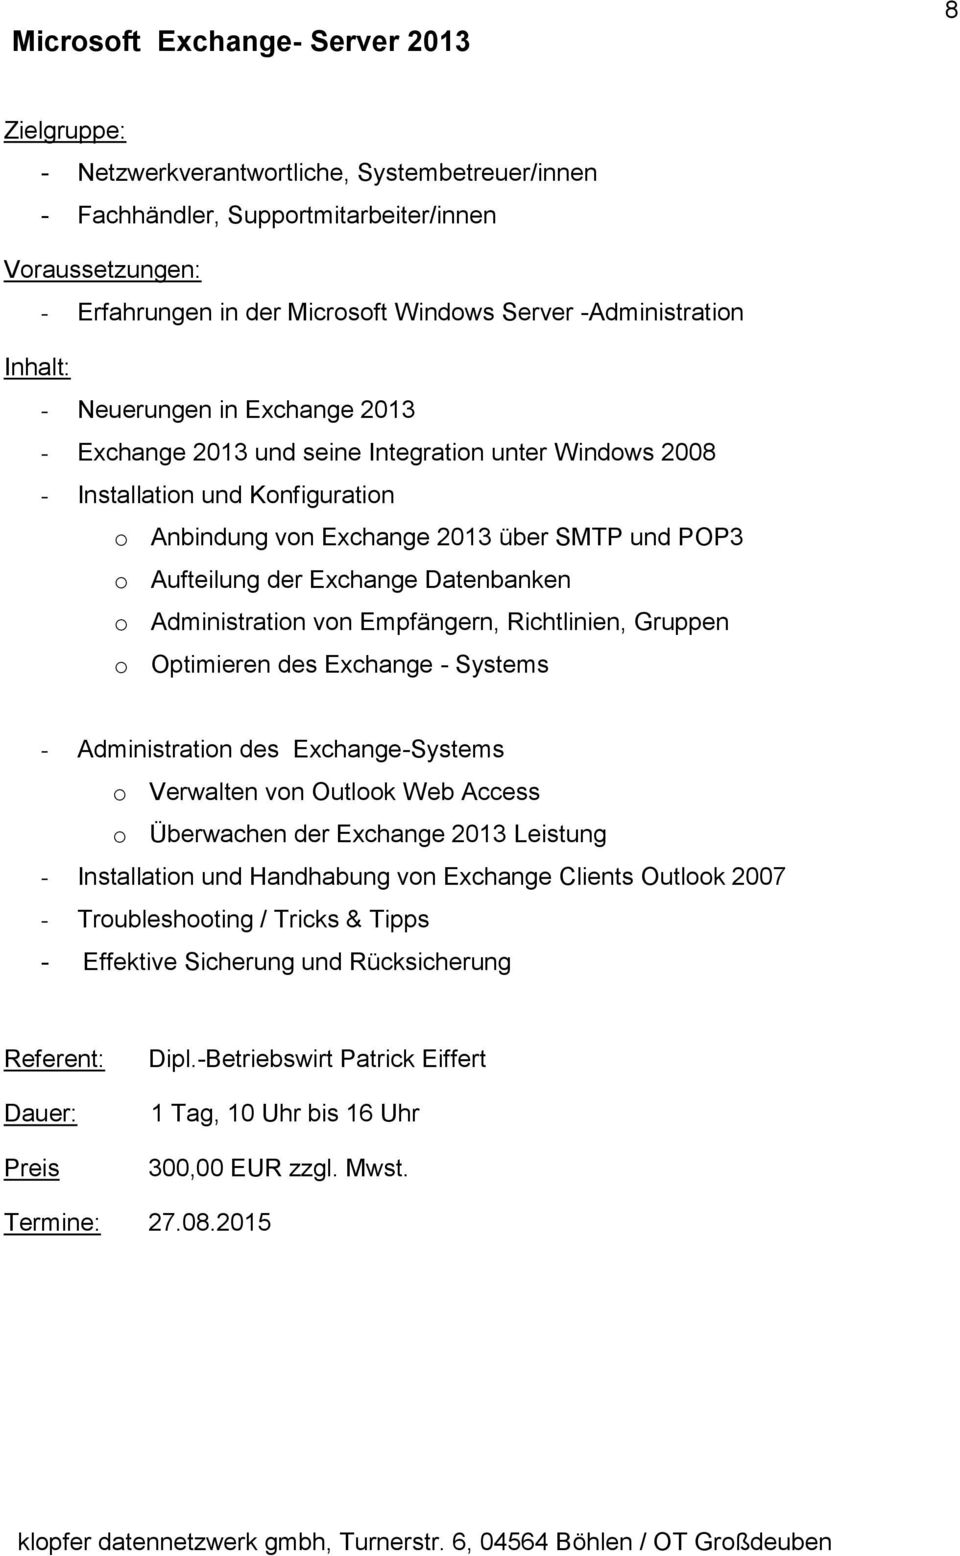 Aufteilung der Exchange Datenbanken o Administration von Empfängern, Richtlinien, Gruppen o Optimieren des Exchange - Systems - Administration des Exchange-Systems o Verwalten von Outlook Web Access